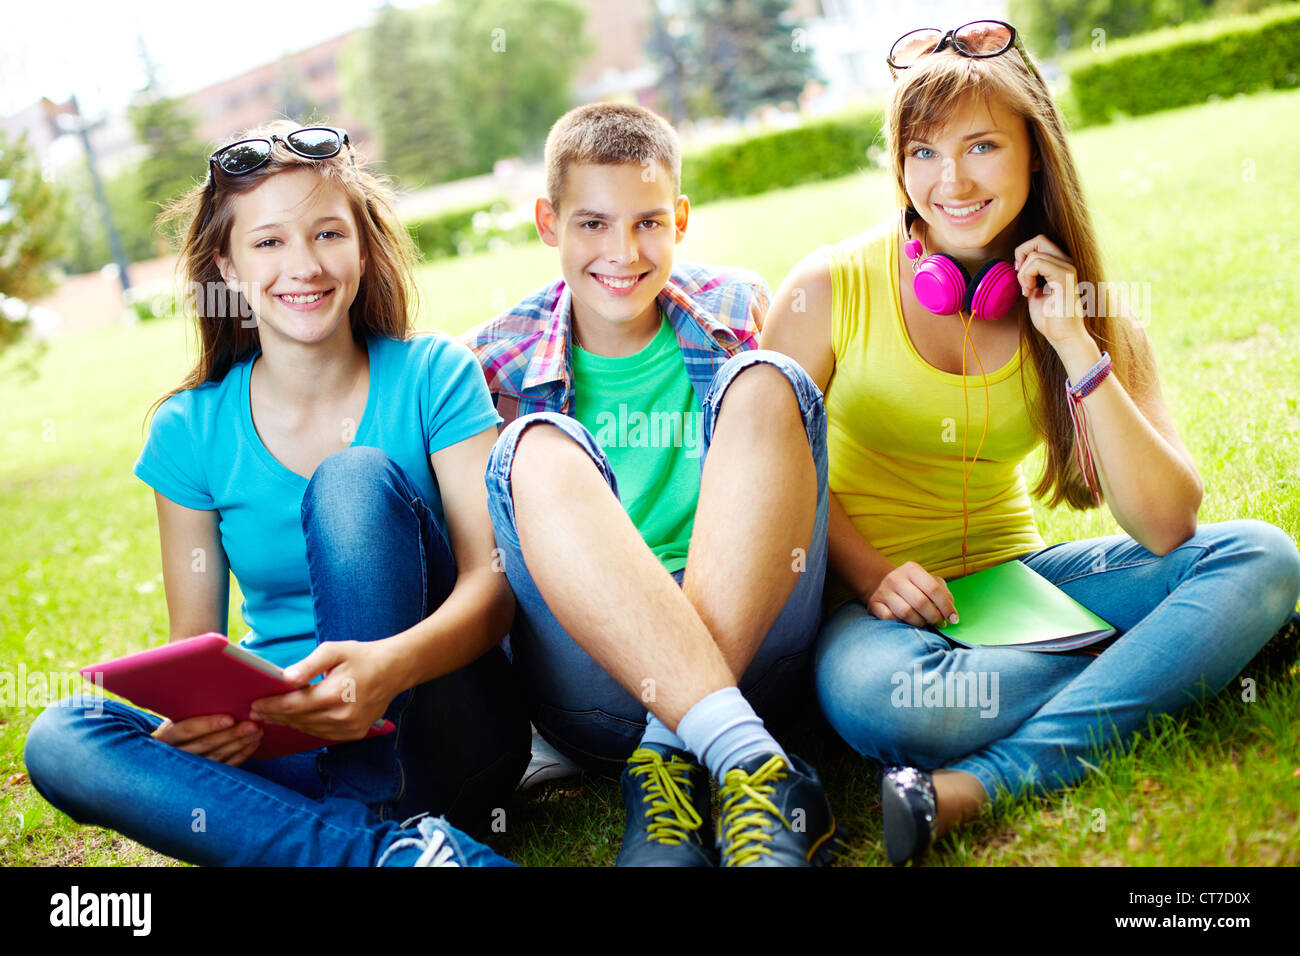 Portrait of three college students enjoying their free time outdoors - Stock Image